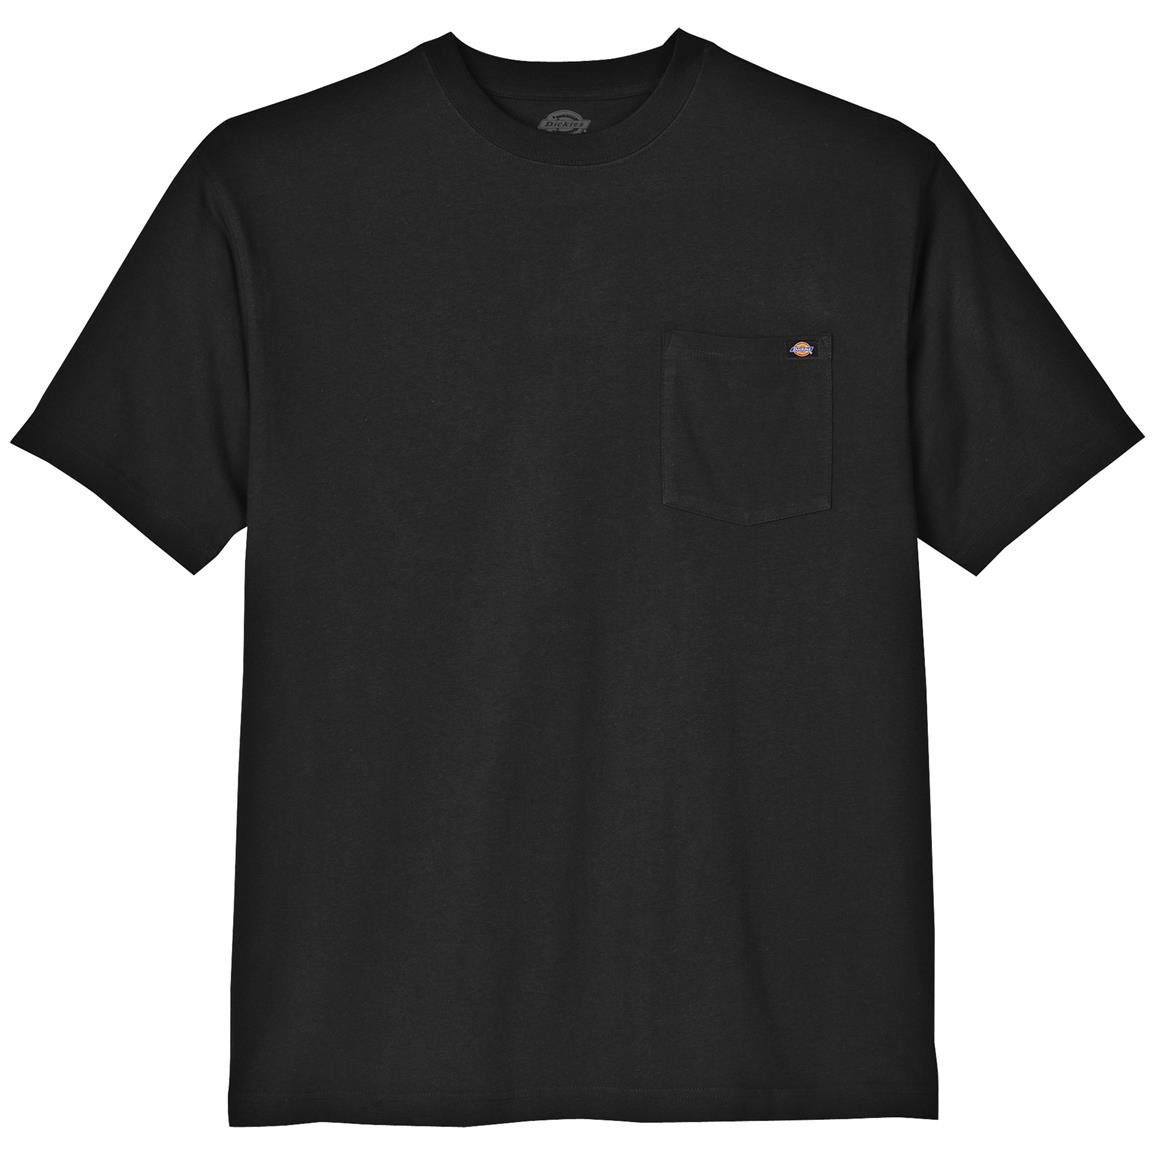 Dickies® Short-sleeved Heavyweight Crew Neck T-shirt, Black